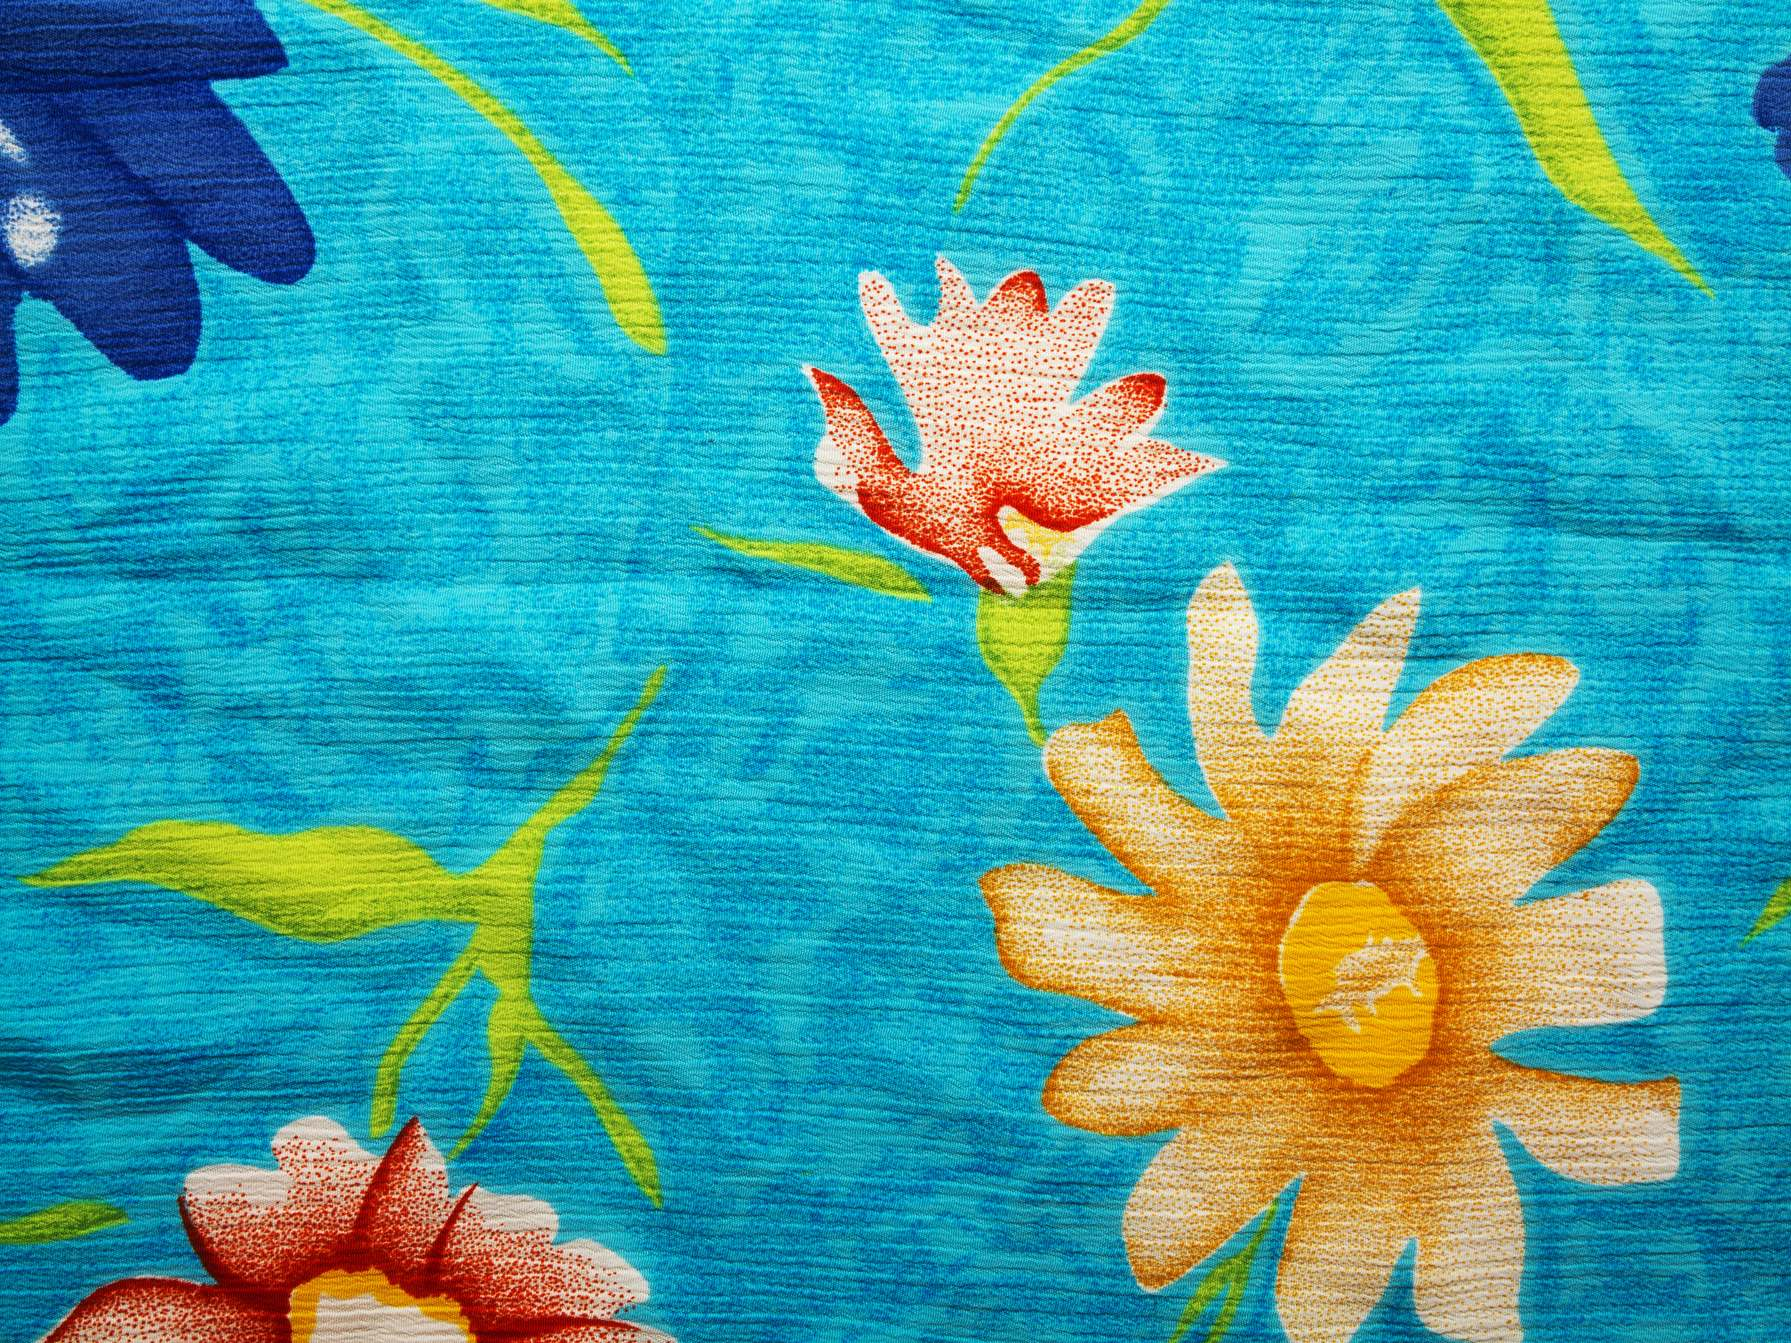 Floral Vintage Blue Fabric Background